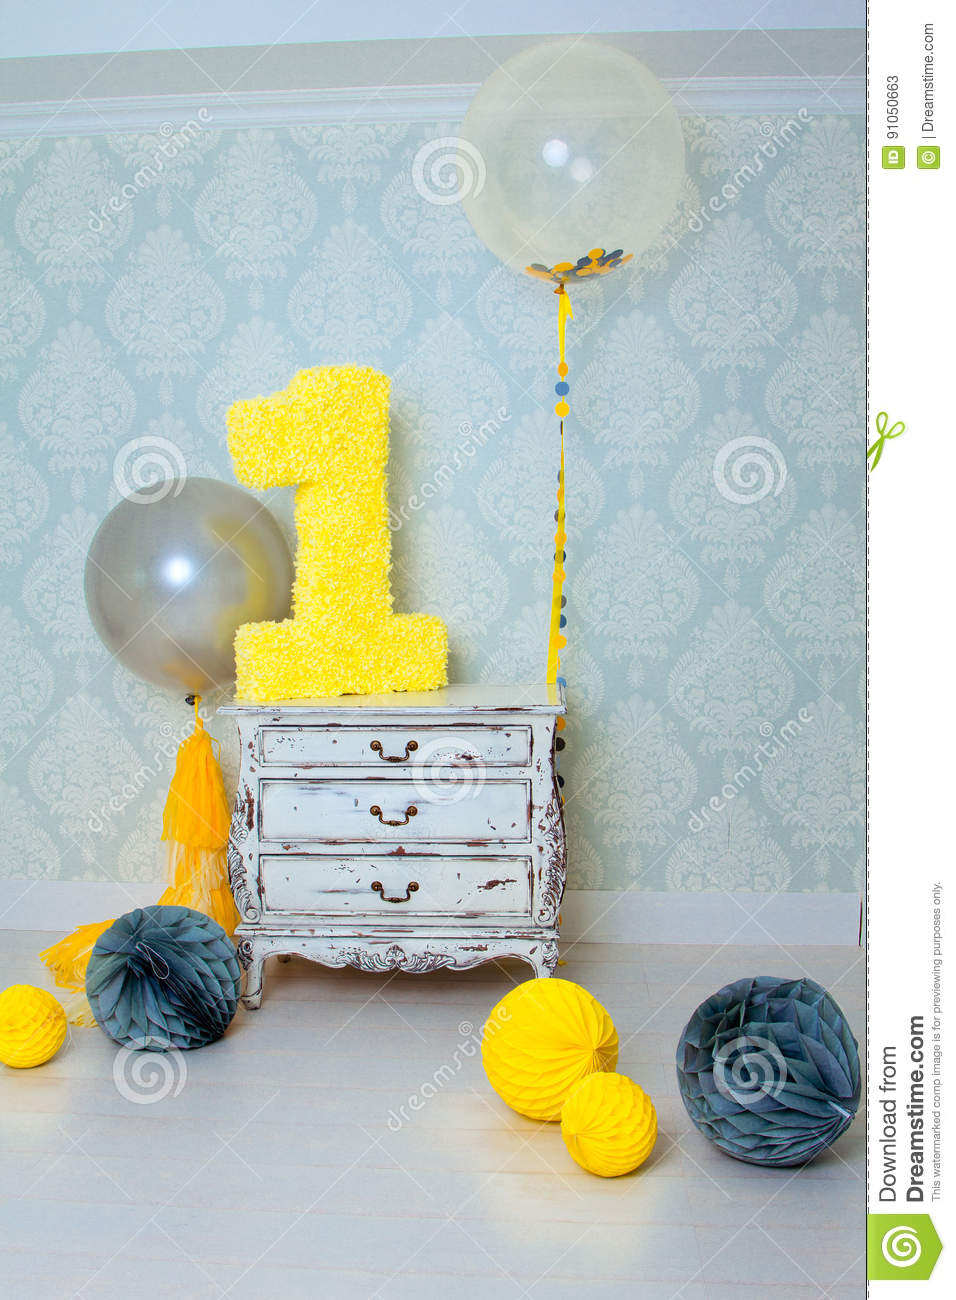 Decorated number 1 for a birthday.